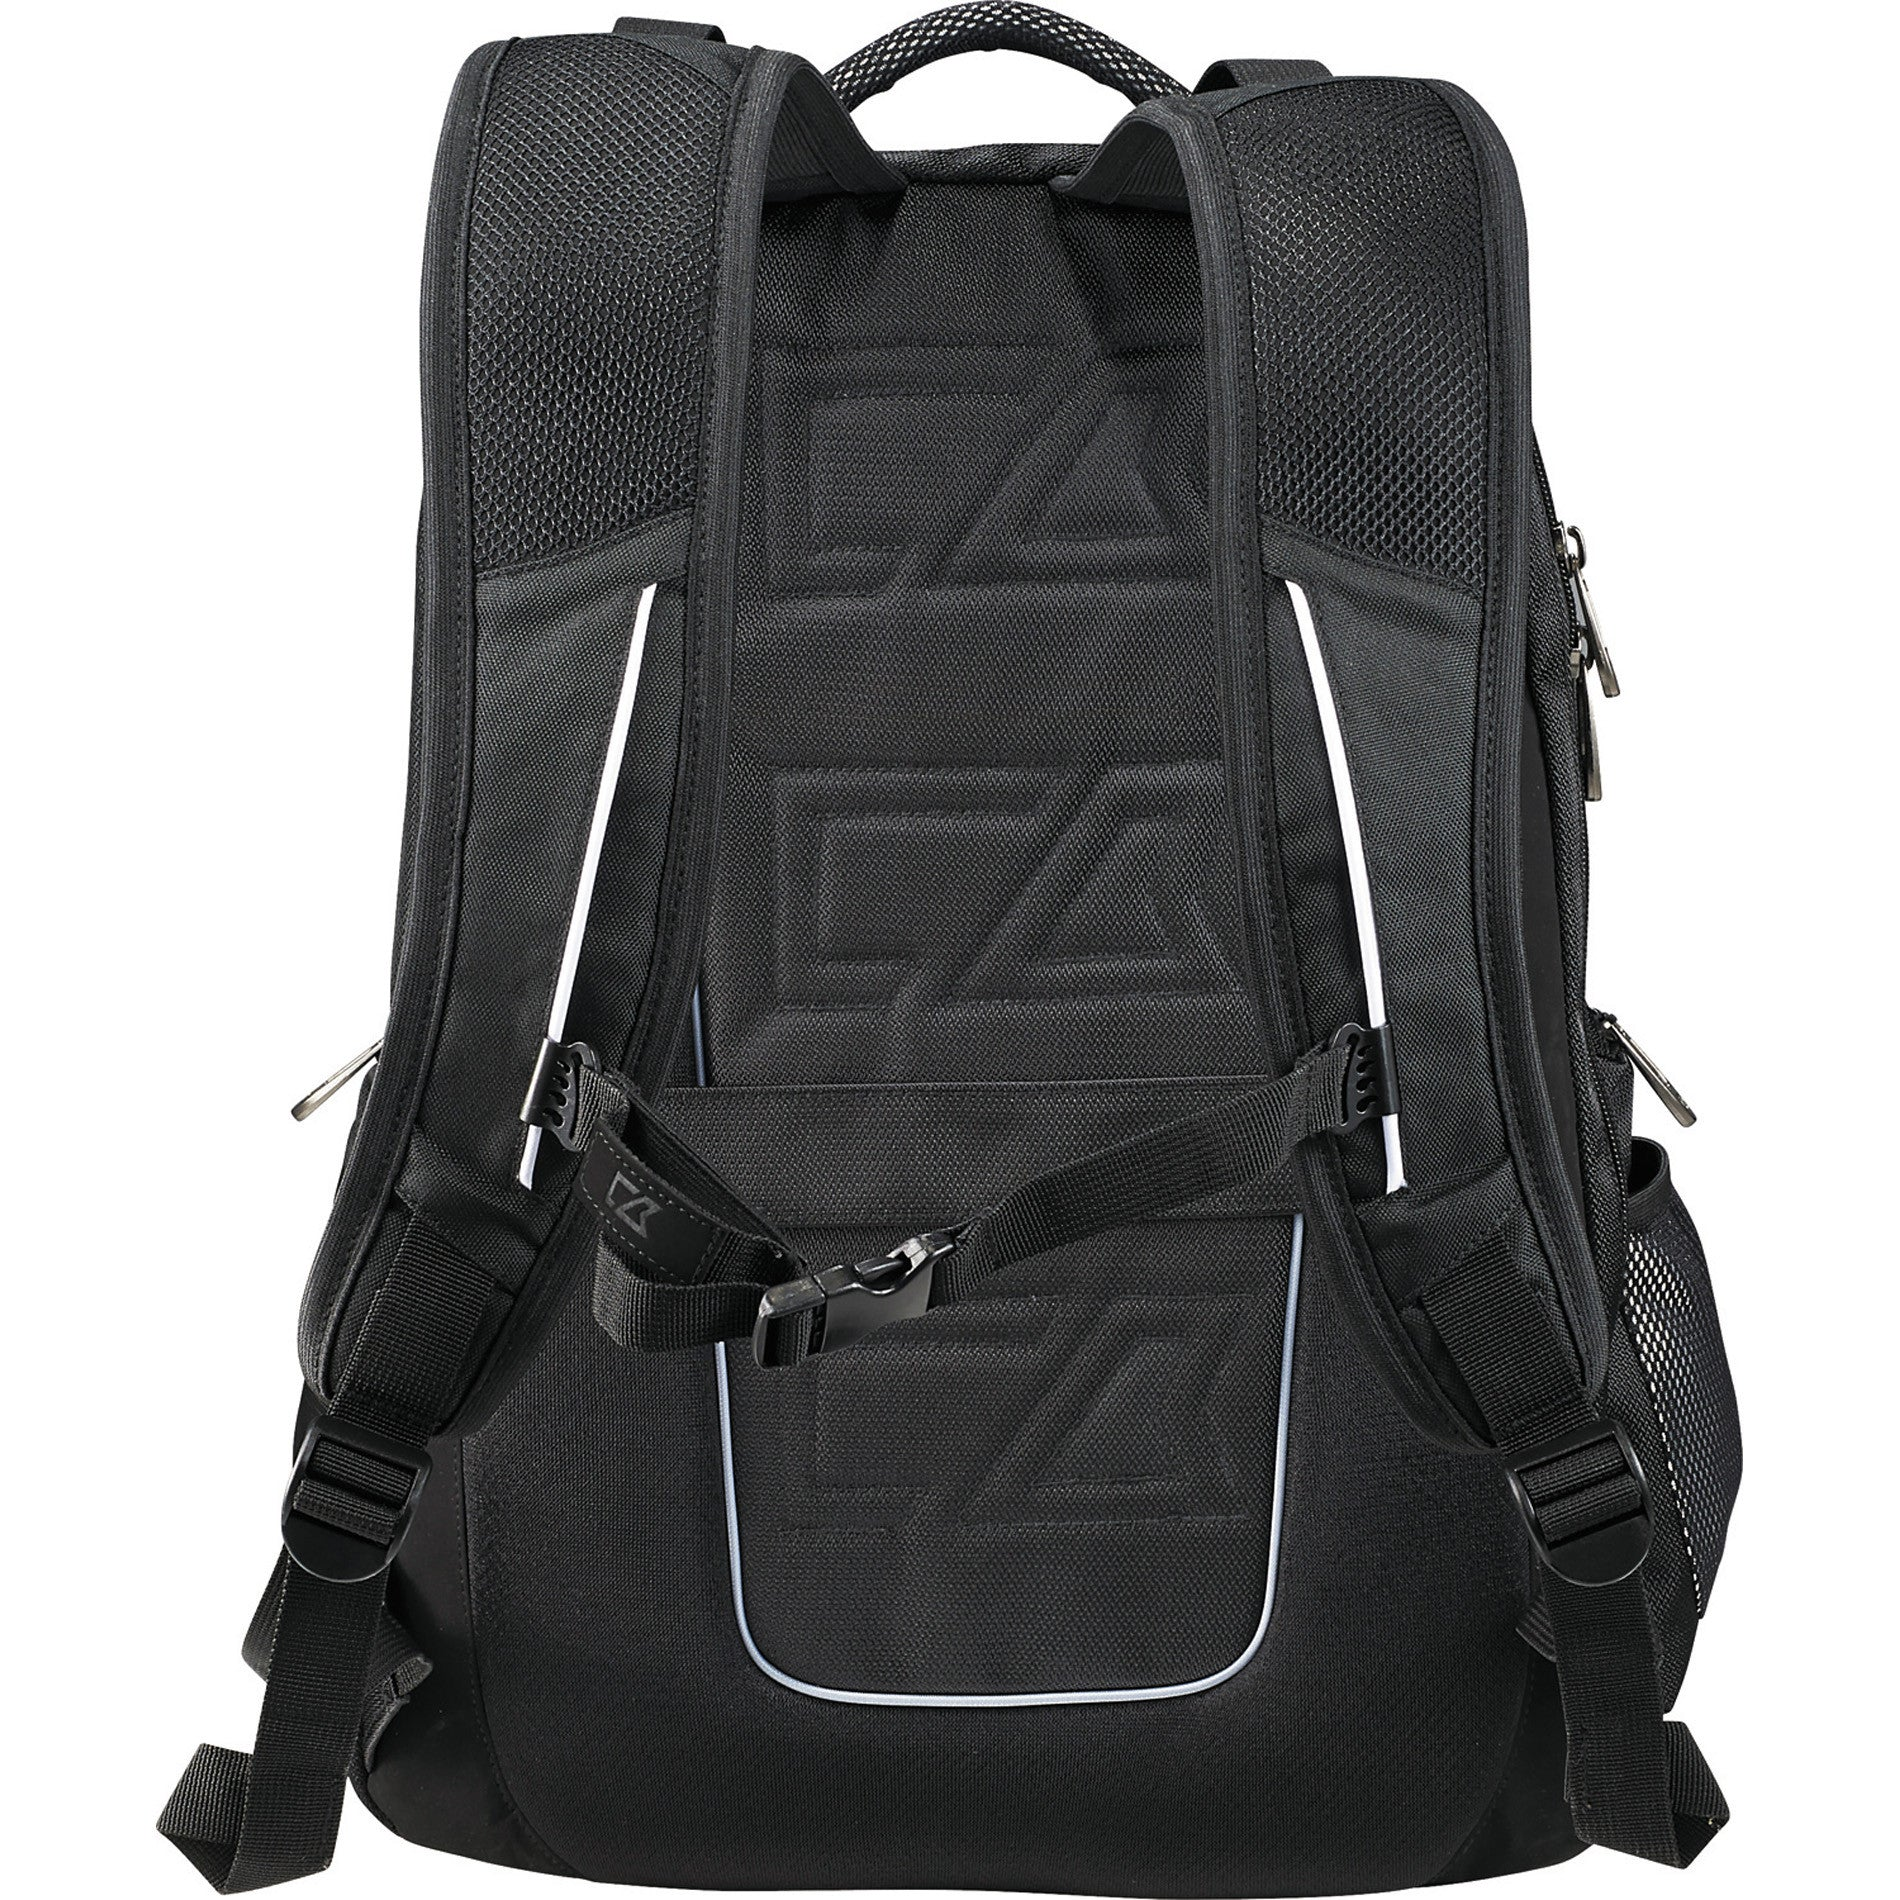 Checkpoint Friendly Tech Backpack-Promotional Backpack - PROMOrx 2757e83bf7